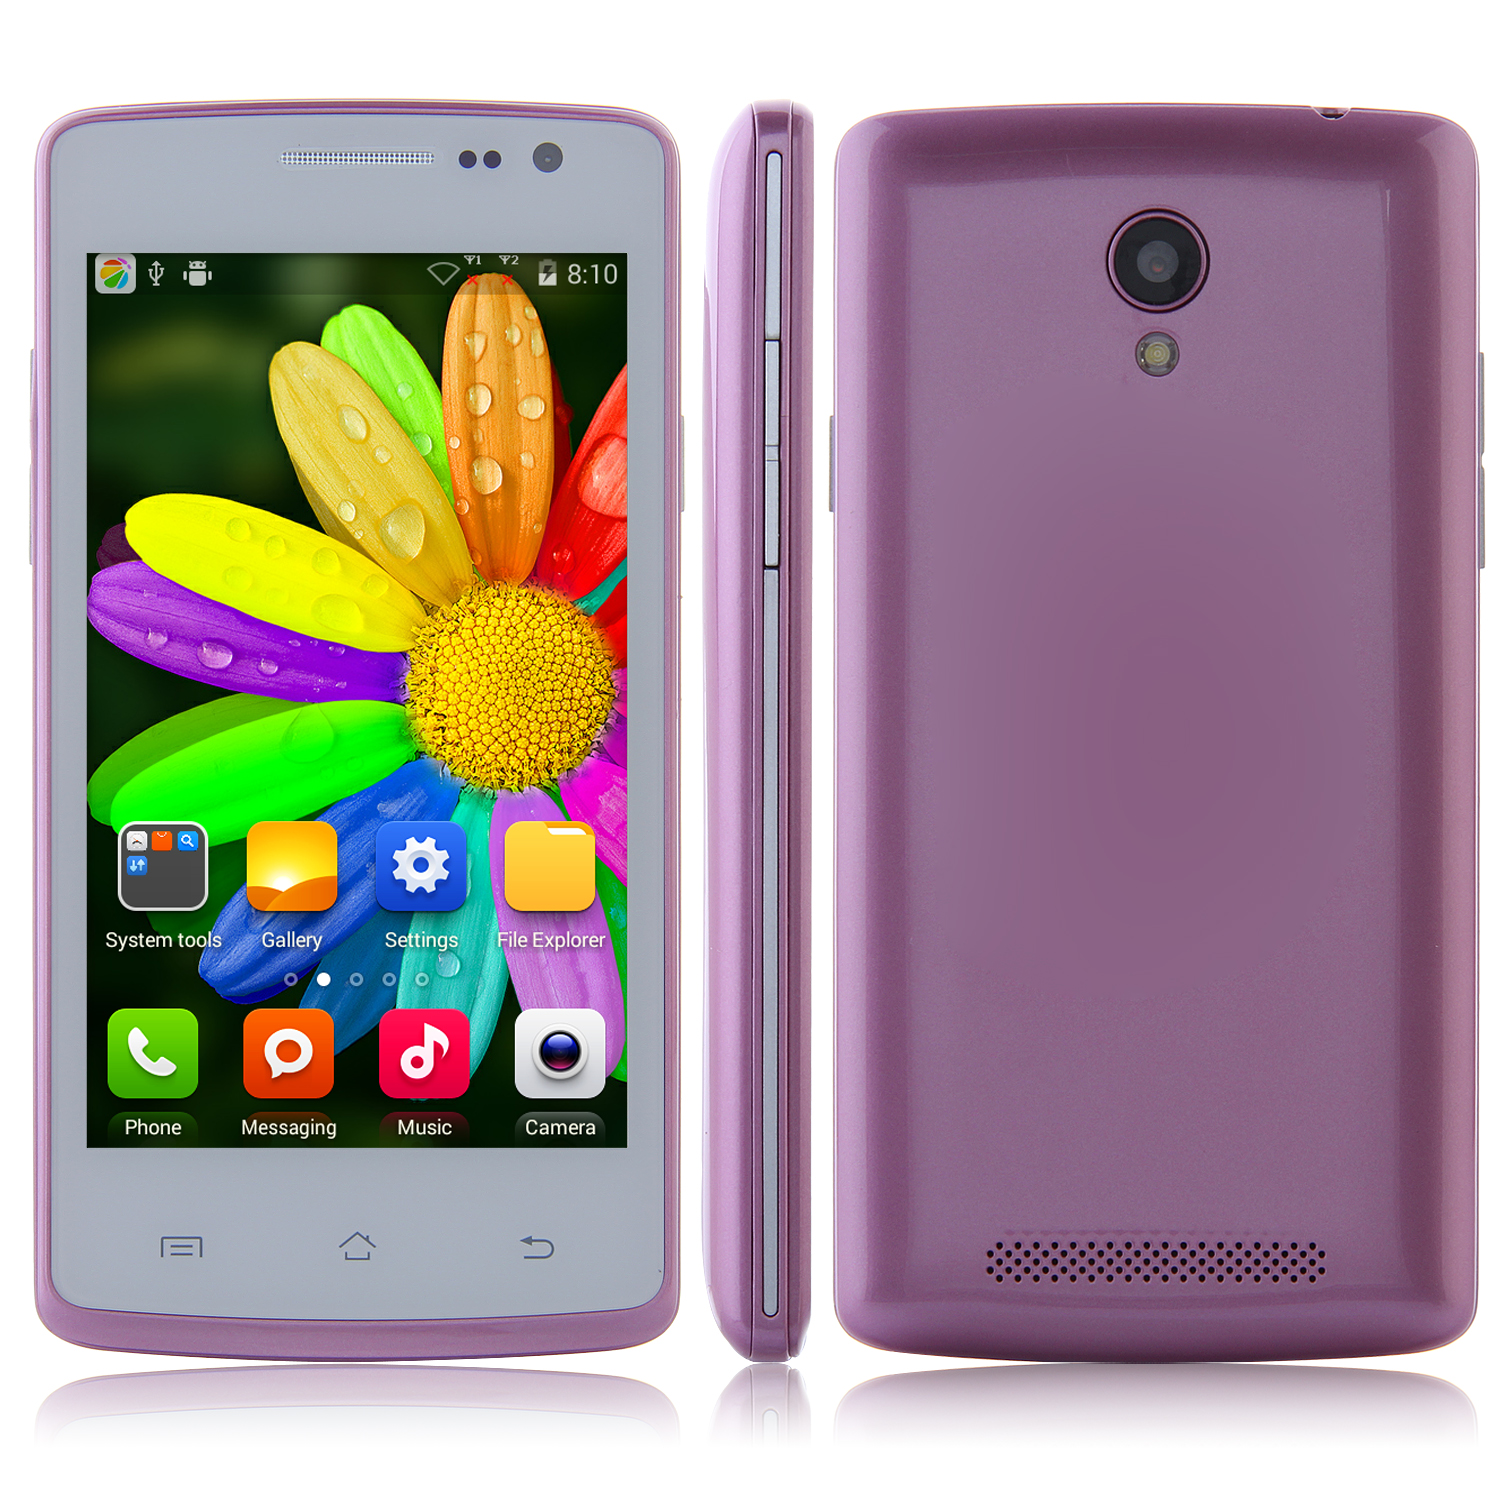 S2 Smartphone Android 4.4 SC7715 4.1 inch 3G GPS Purple